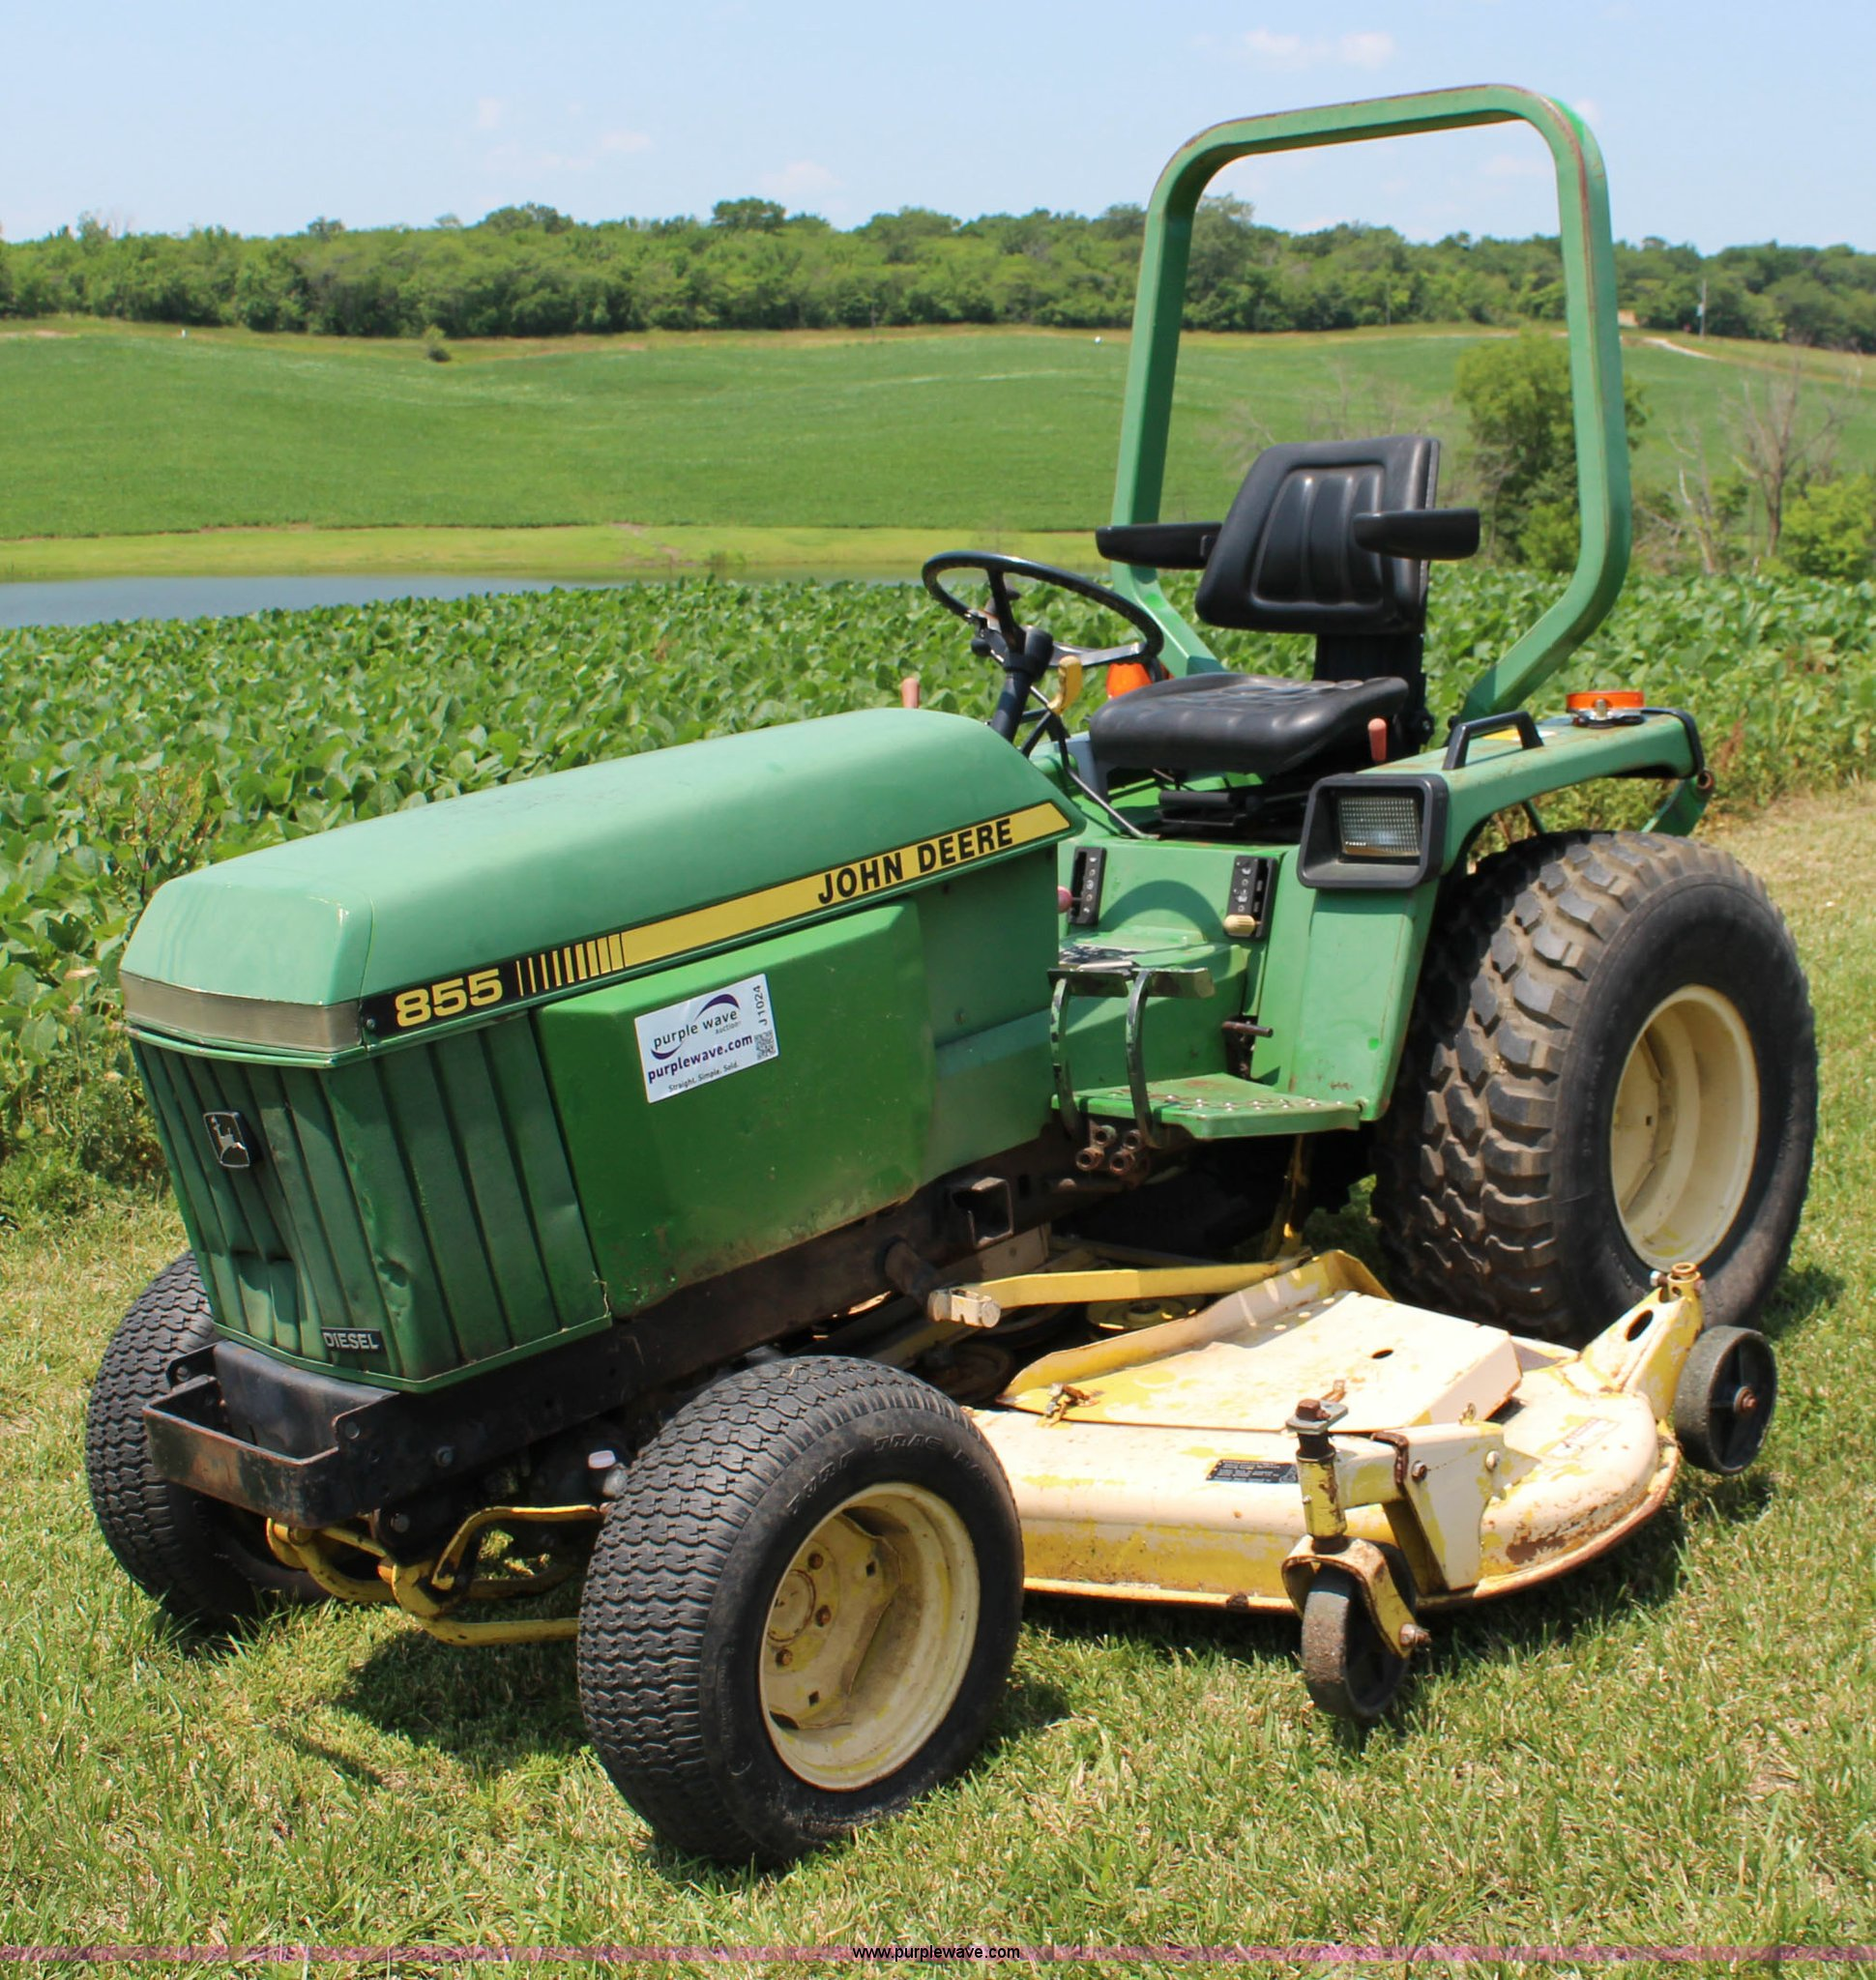 wheels and tractor john deere garden vehicles tractors online deals